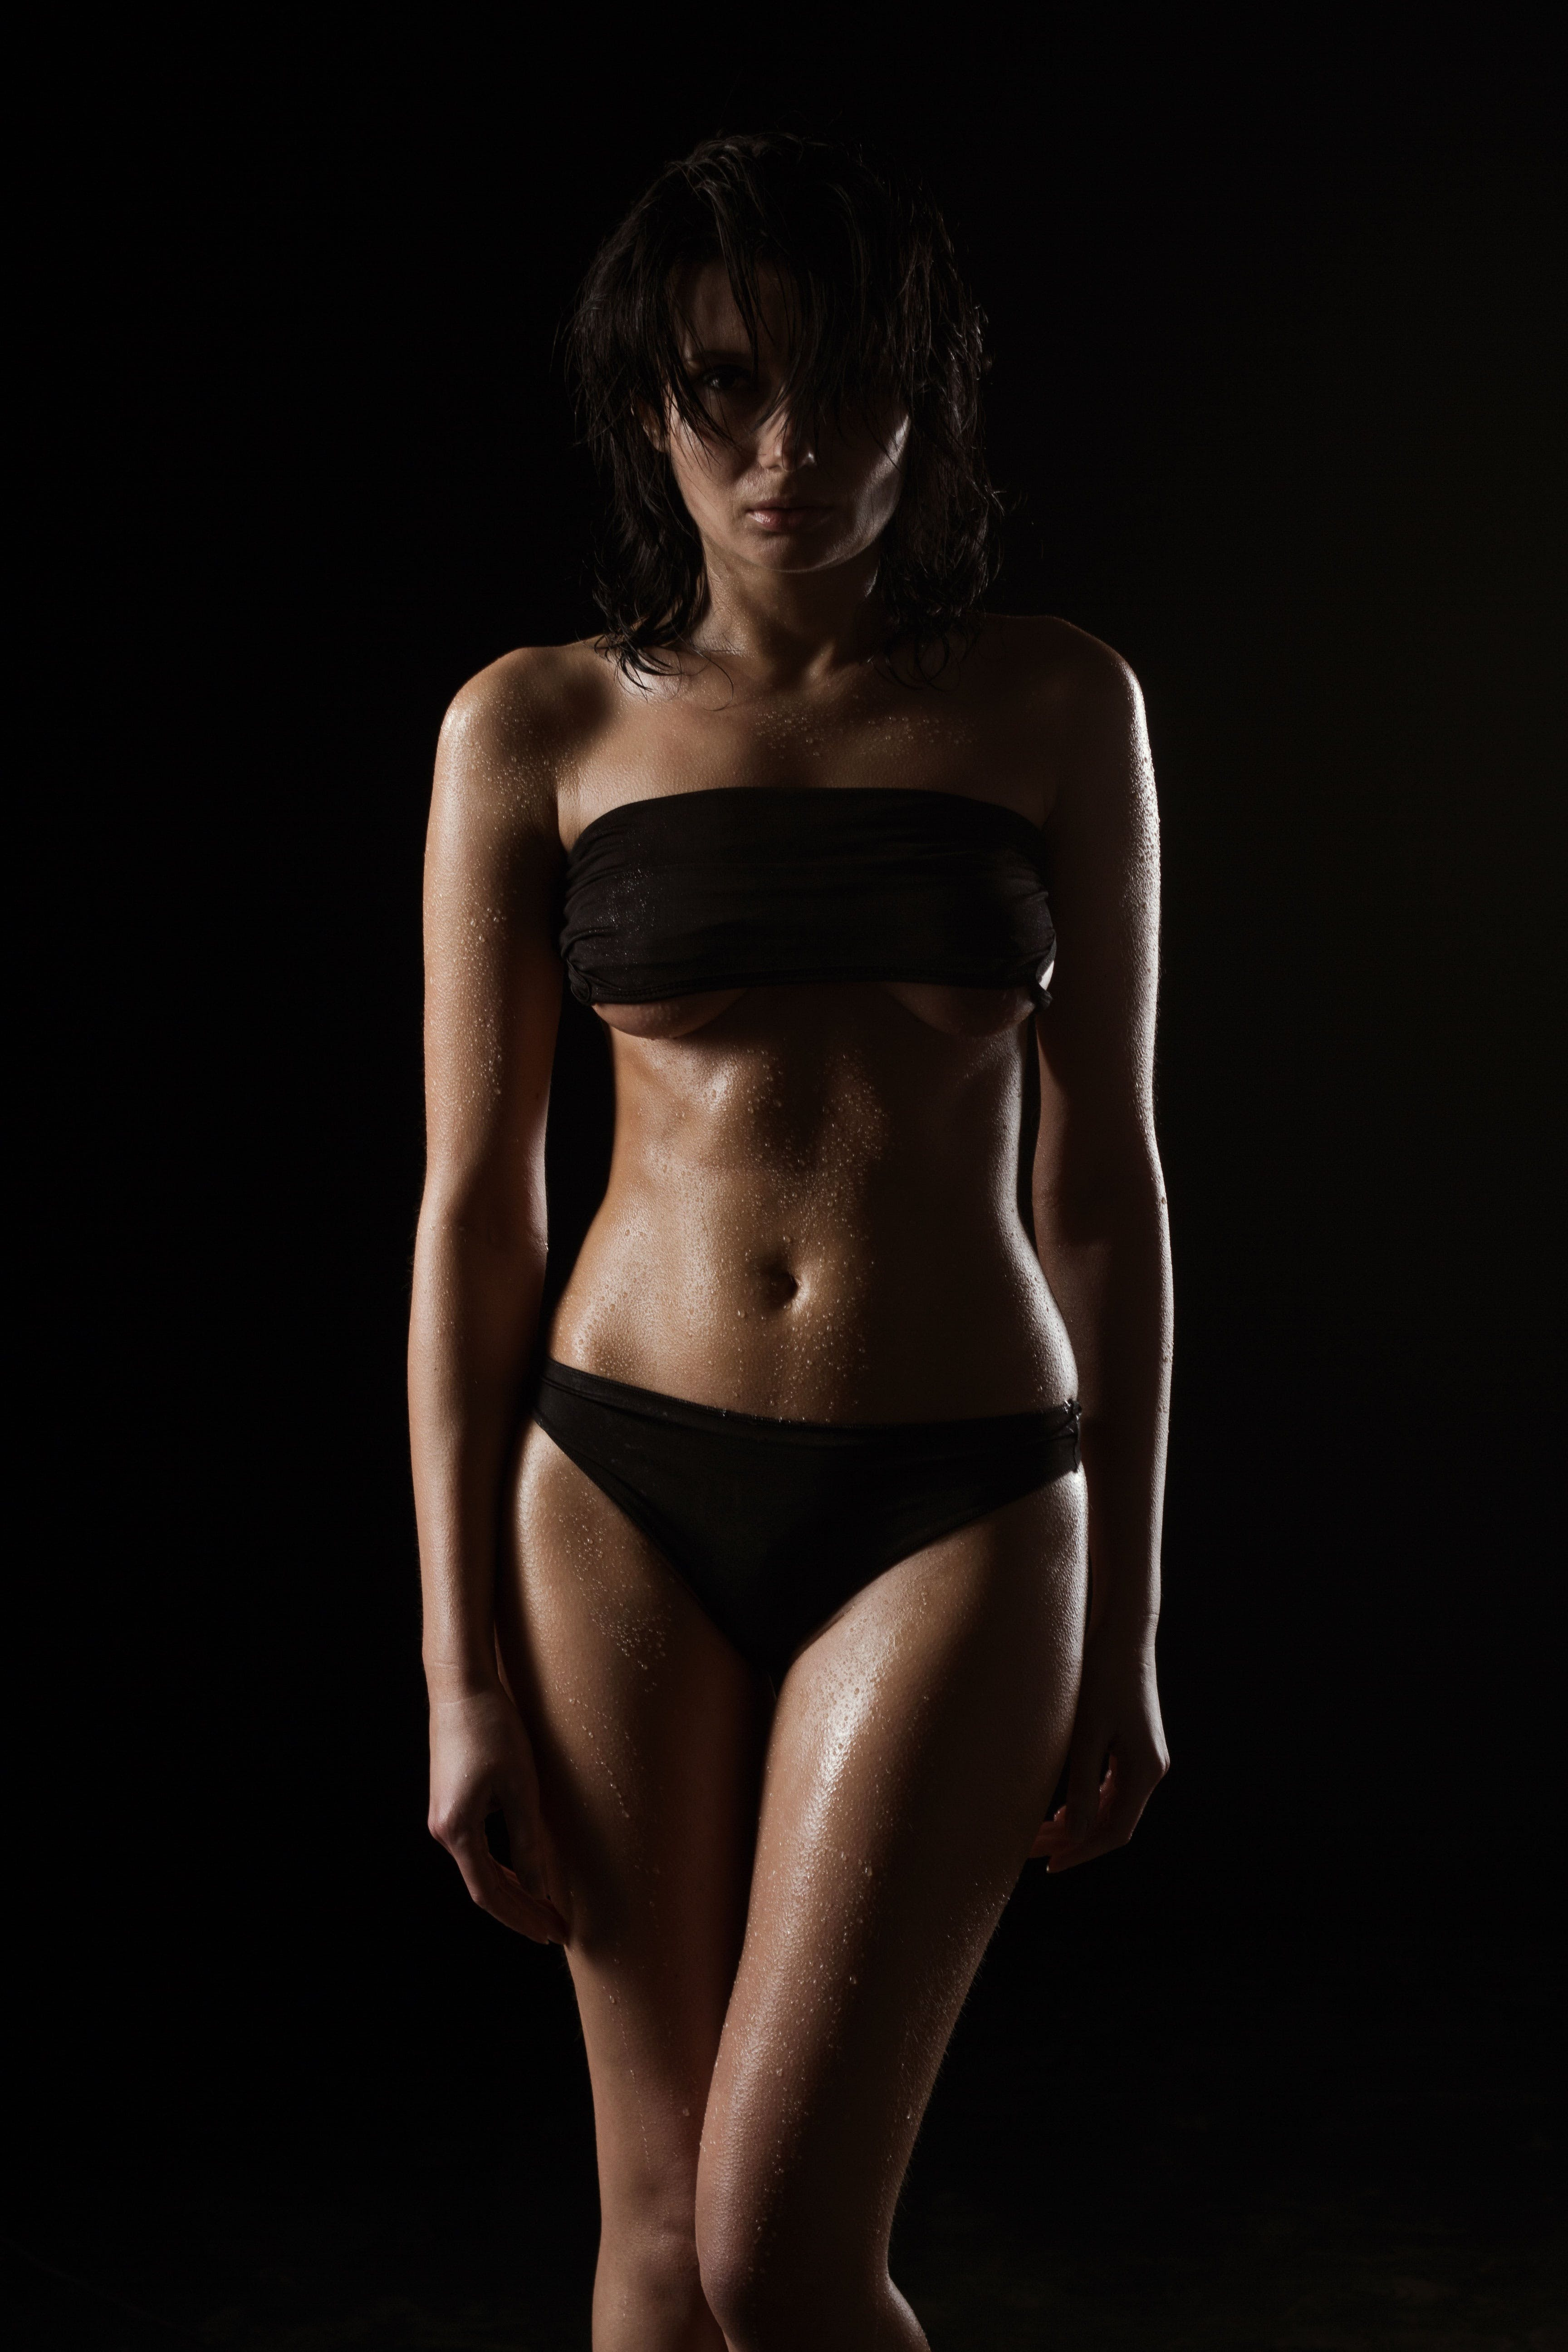 Woman Wearing Black Tube Top and Black Panty in a Dim Lighted Scenario